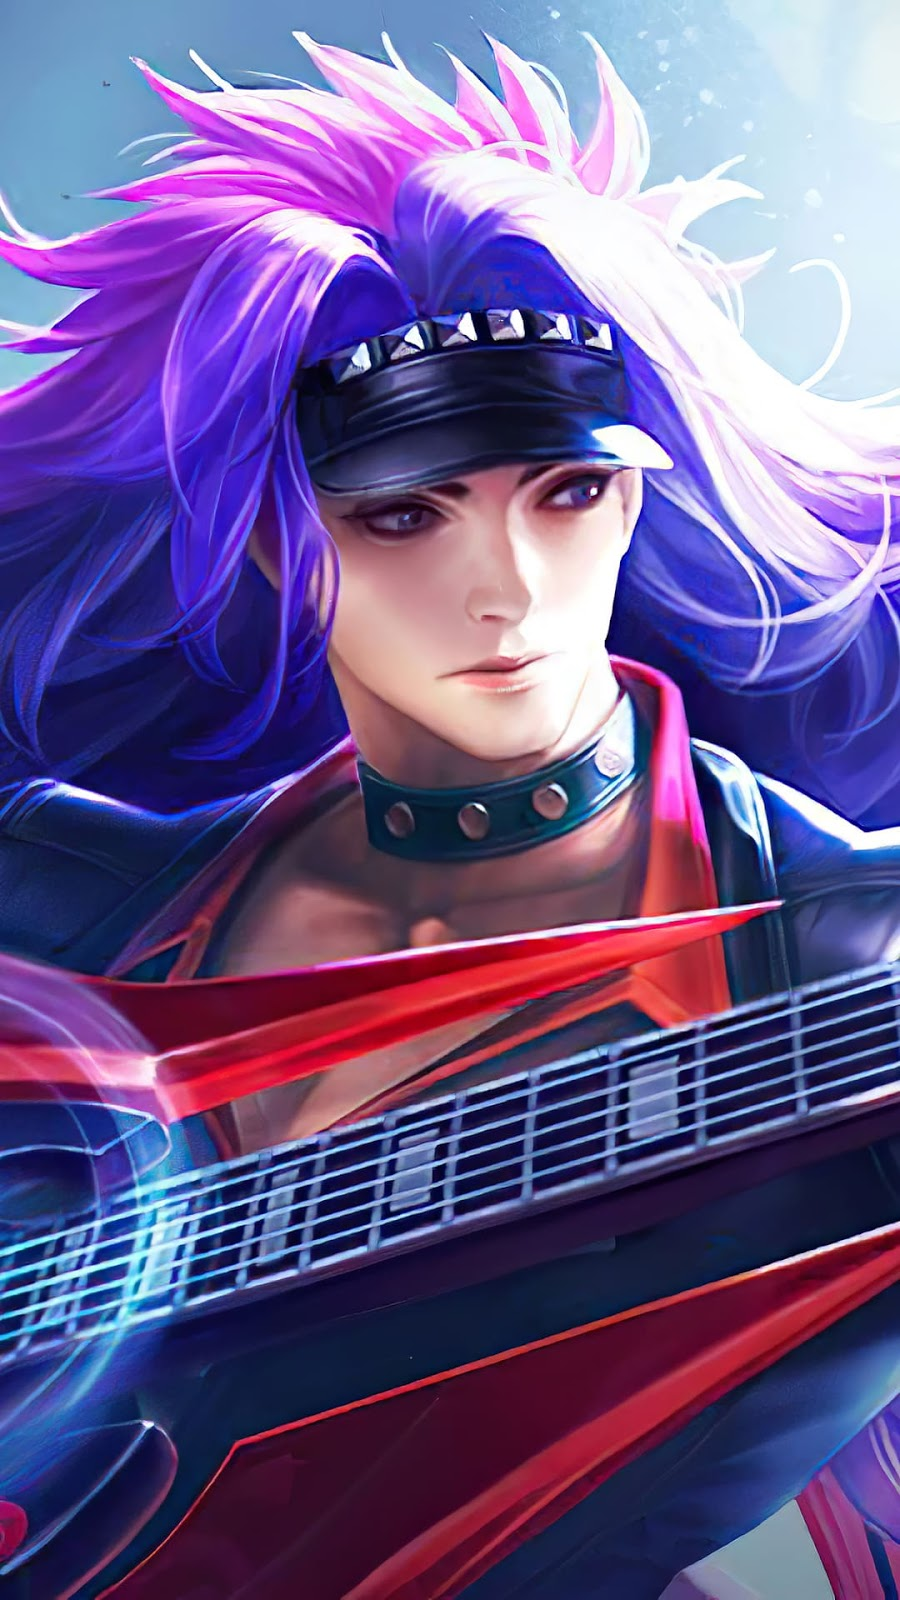 Wallpaper Martis Deathrock Skin Mobile Legends HD for Android and iOS